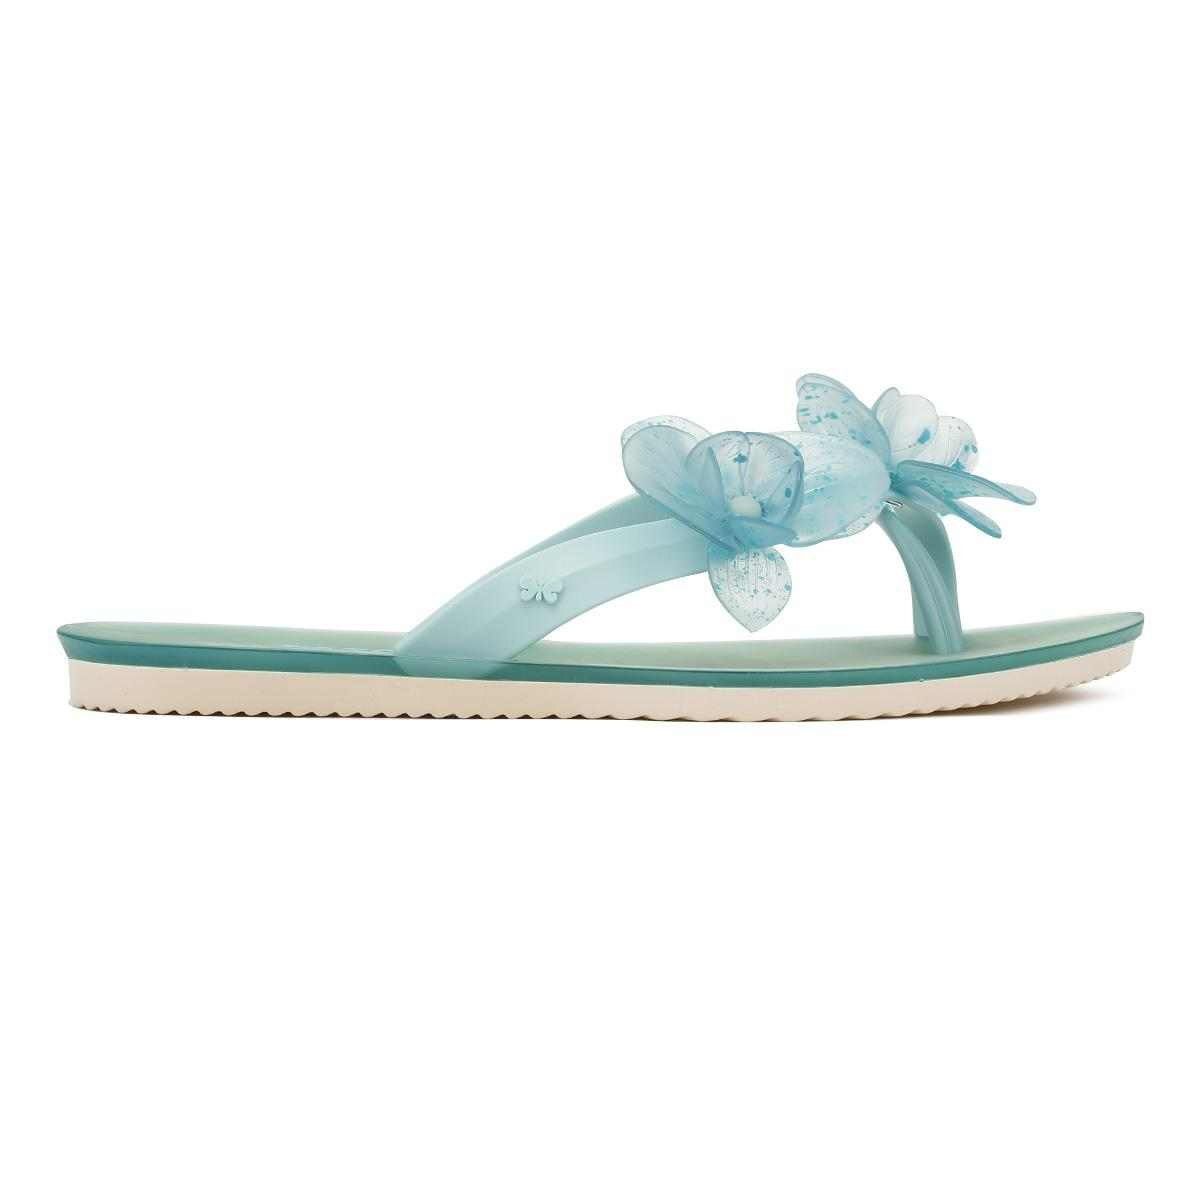 26cd636d2d5 Zaxy - Blue Womens Aqua Ice Flower Flip Flops - Lyst. View fullscreen